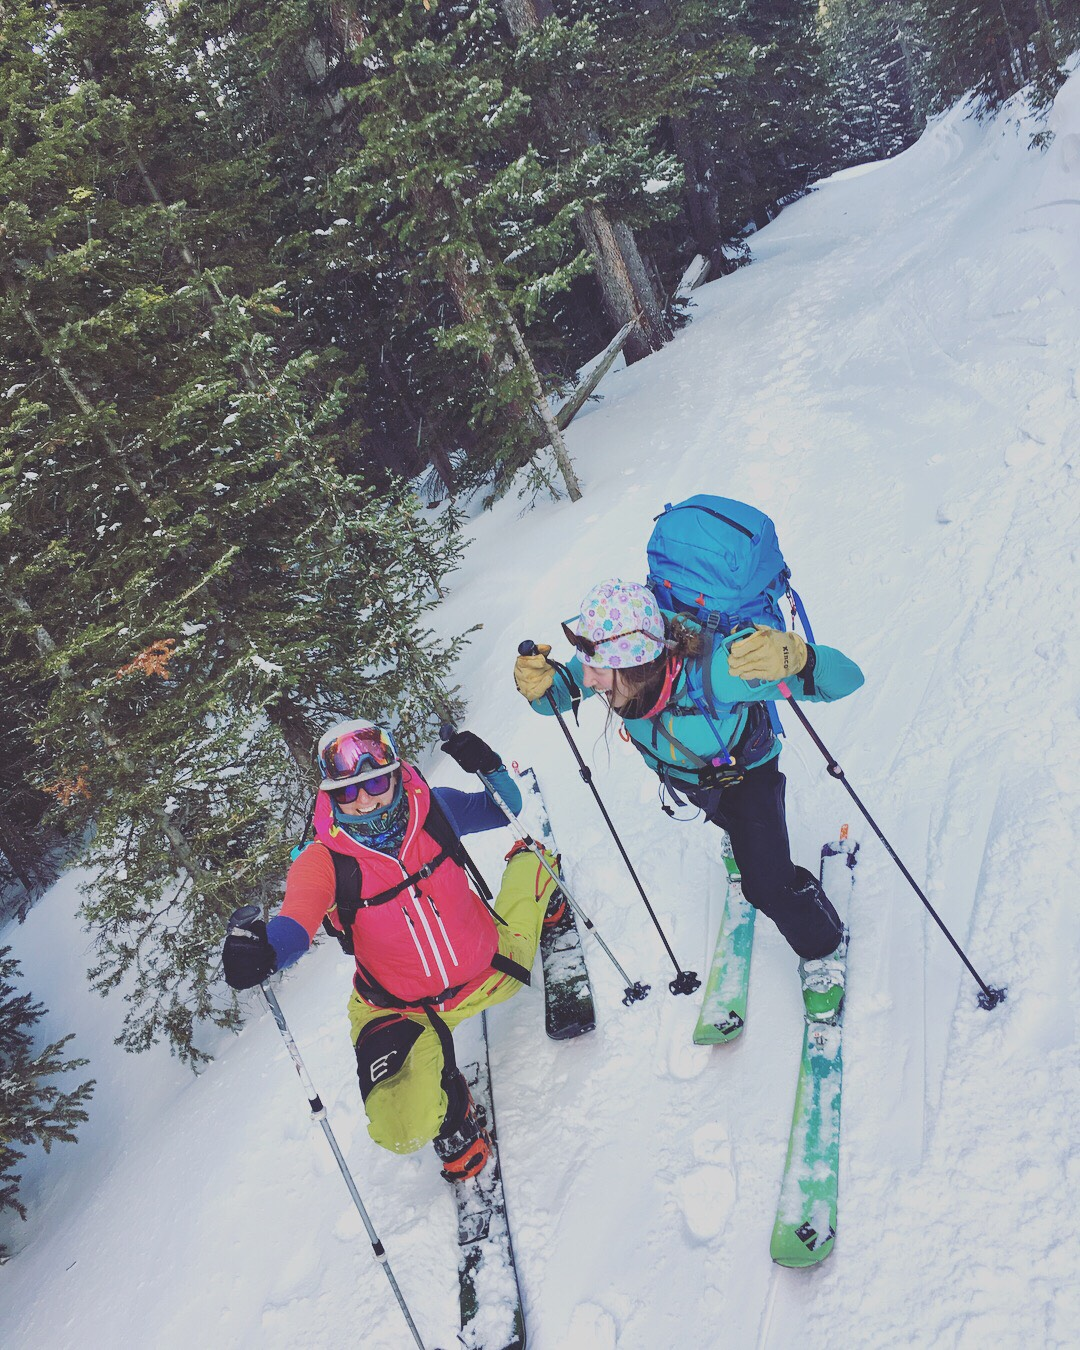 What's your but? - REI & Outdoor Women's Alliance